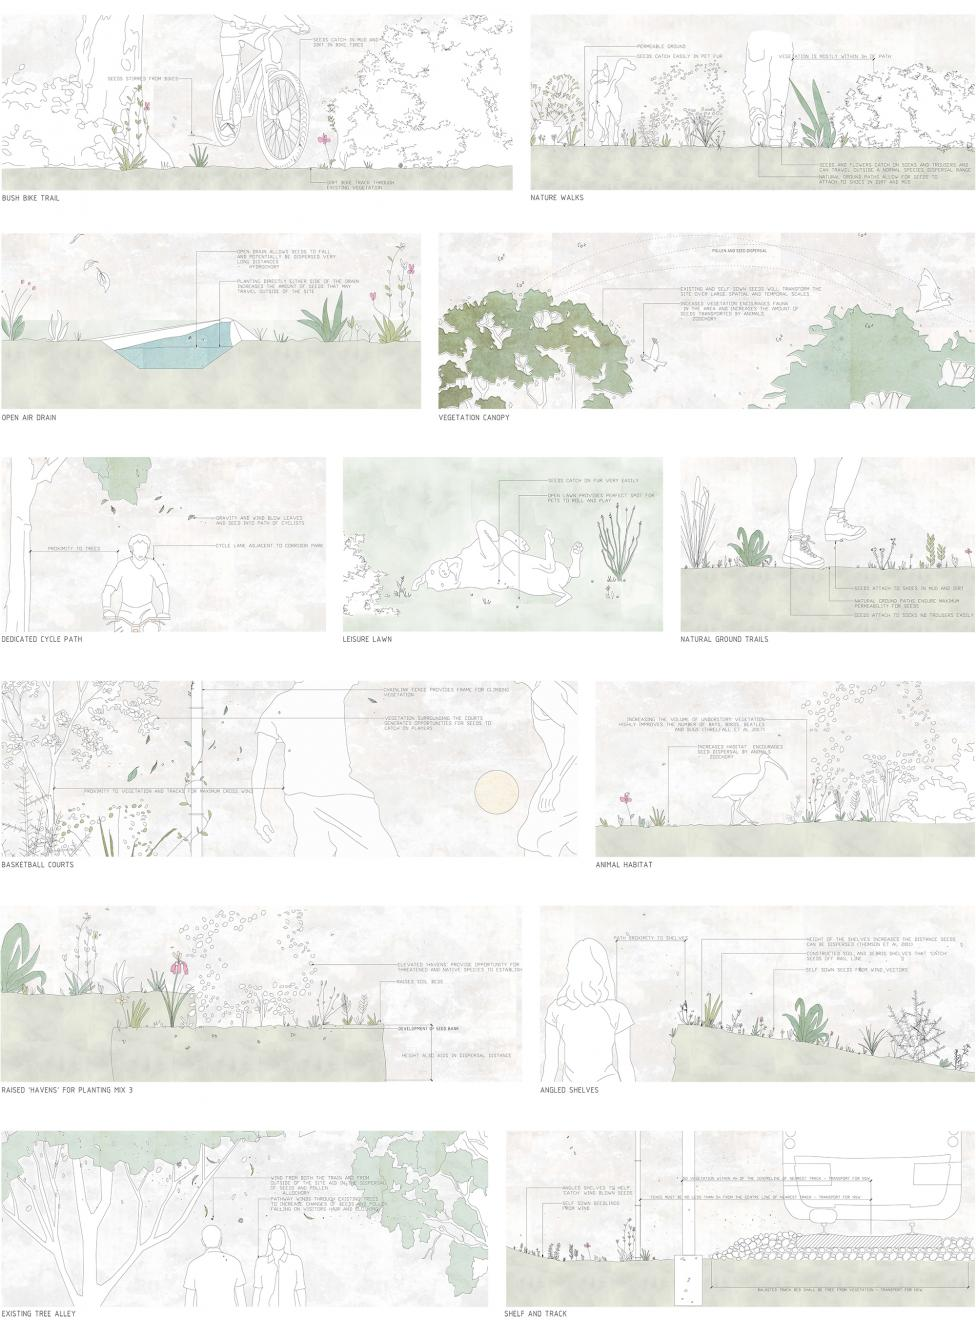 DAB Student Project: Wandering Ecologies: Anthropochory as a Method of Restoration; Seed Dispersal in the Urban Landscape, by Brittany Johnston